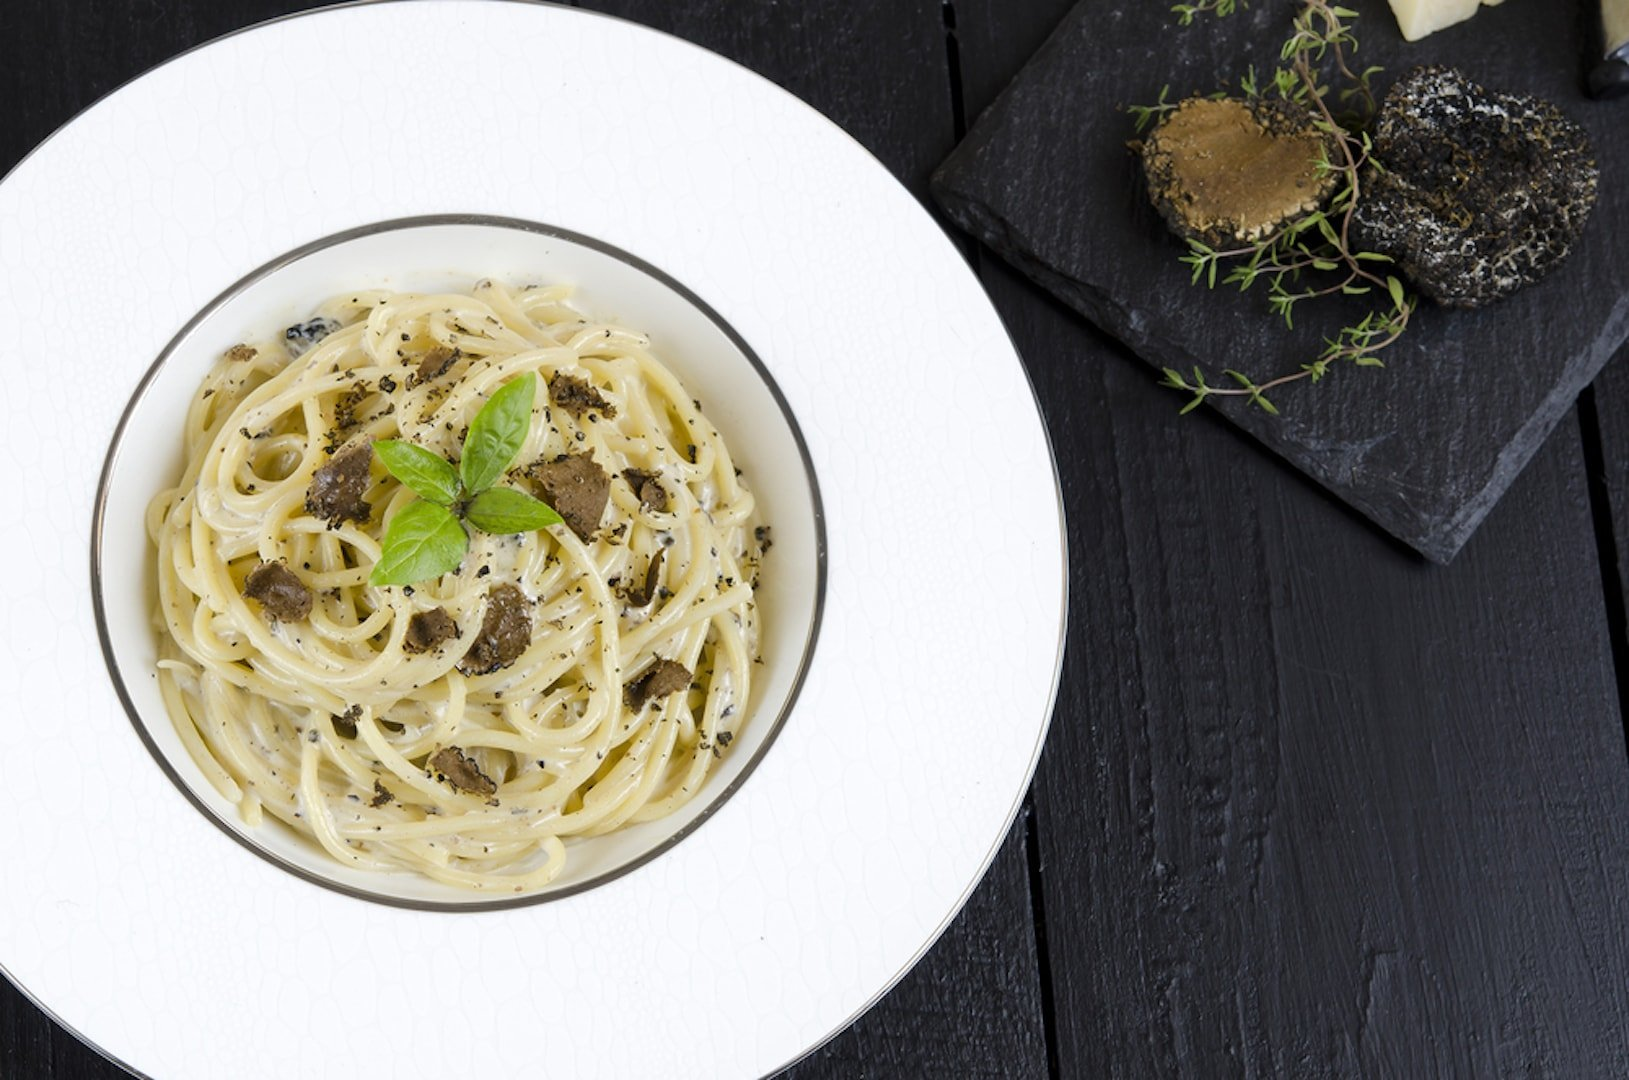 truffle pasta to pair with barolo wine